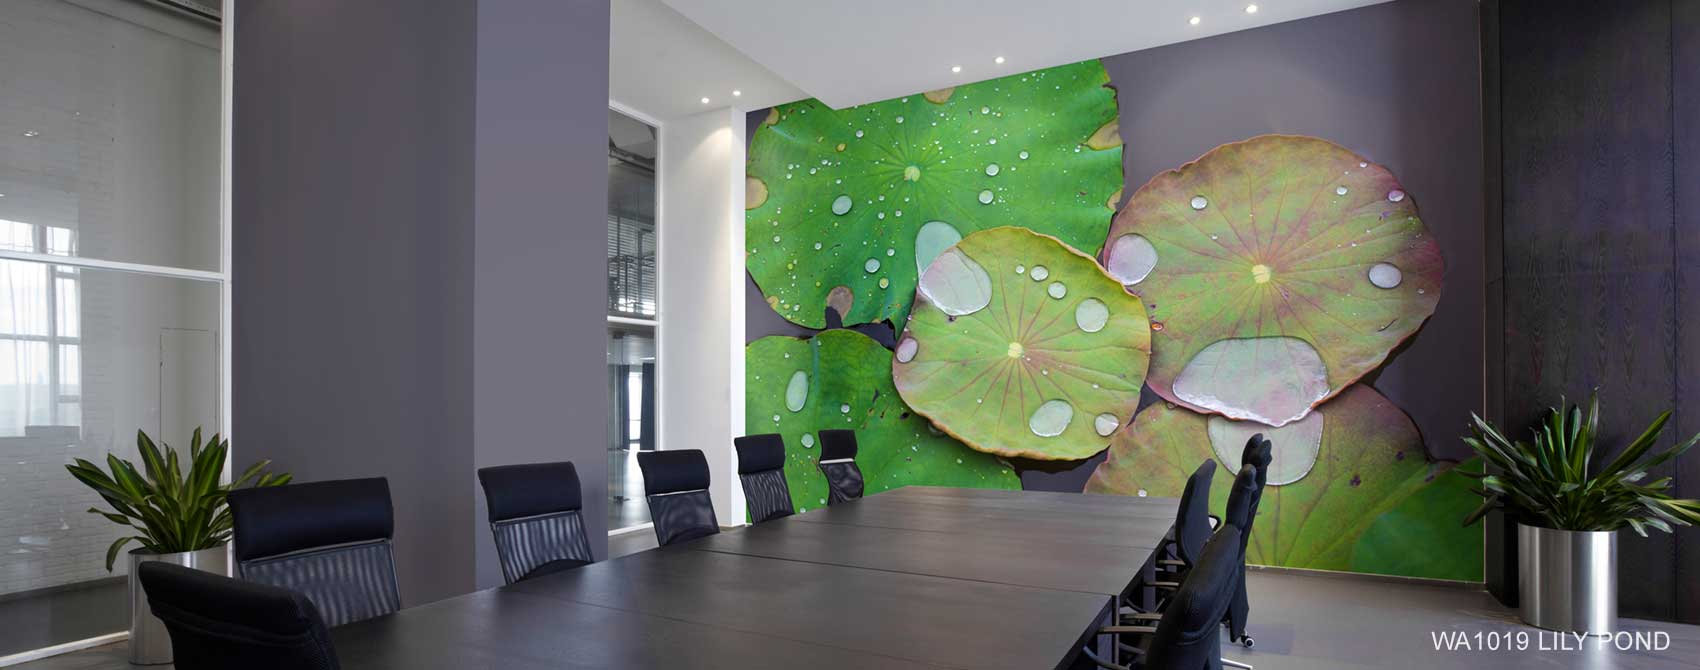 Lily Pond Wallpaper Mural